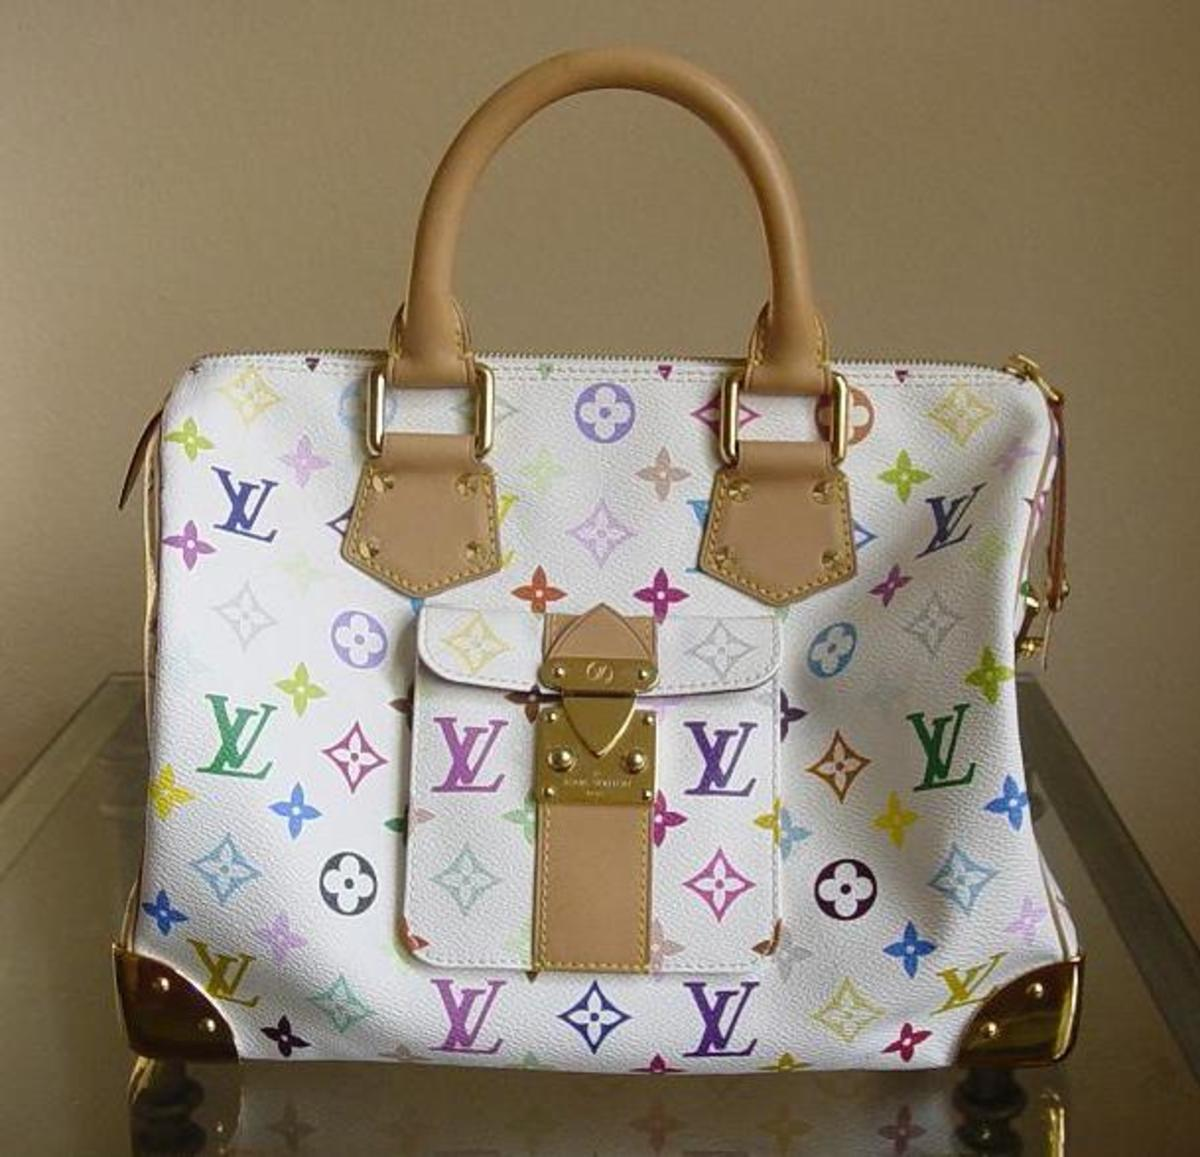 LV (Louis Vuitton) Speedy, monogram, damier ebene, damier azur or other styles?